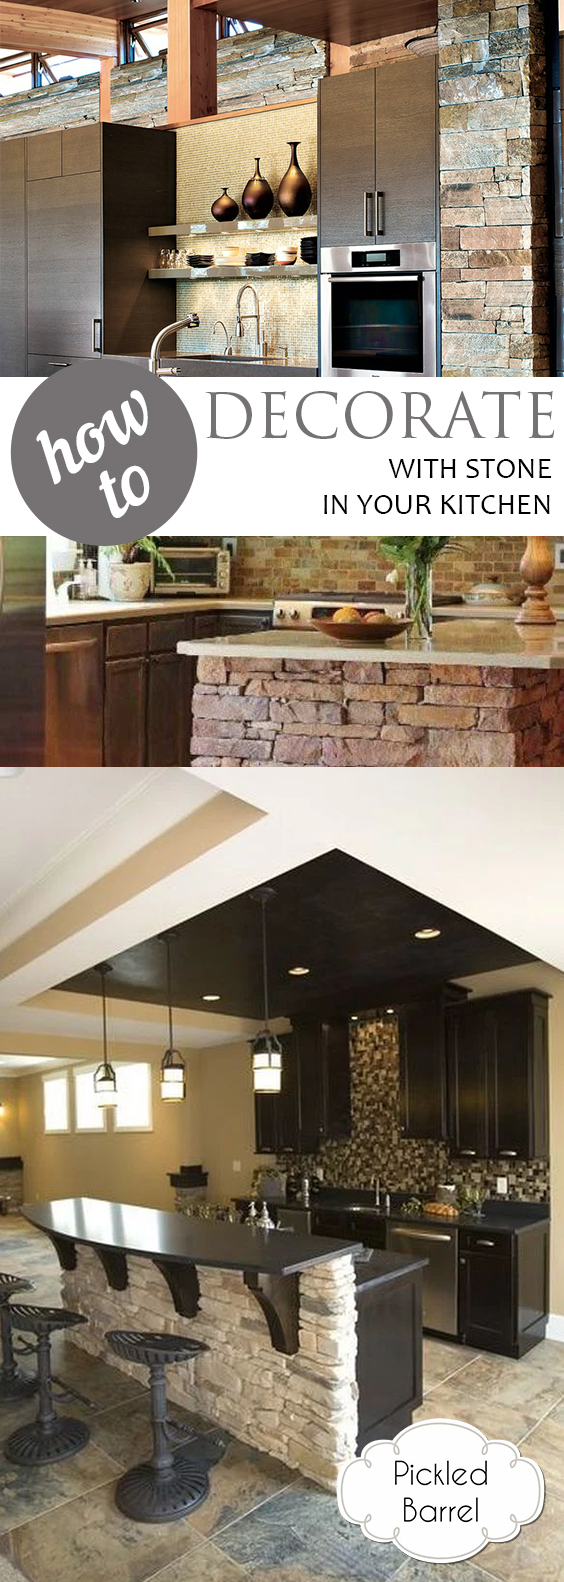 How To Decorate With Stone In Your Kitchen| Kitchen, Kitchen Decor, Kitchen  Decor